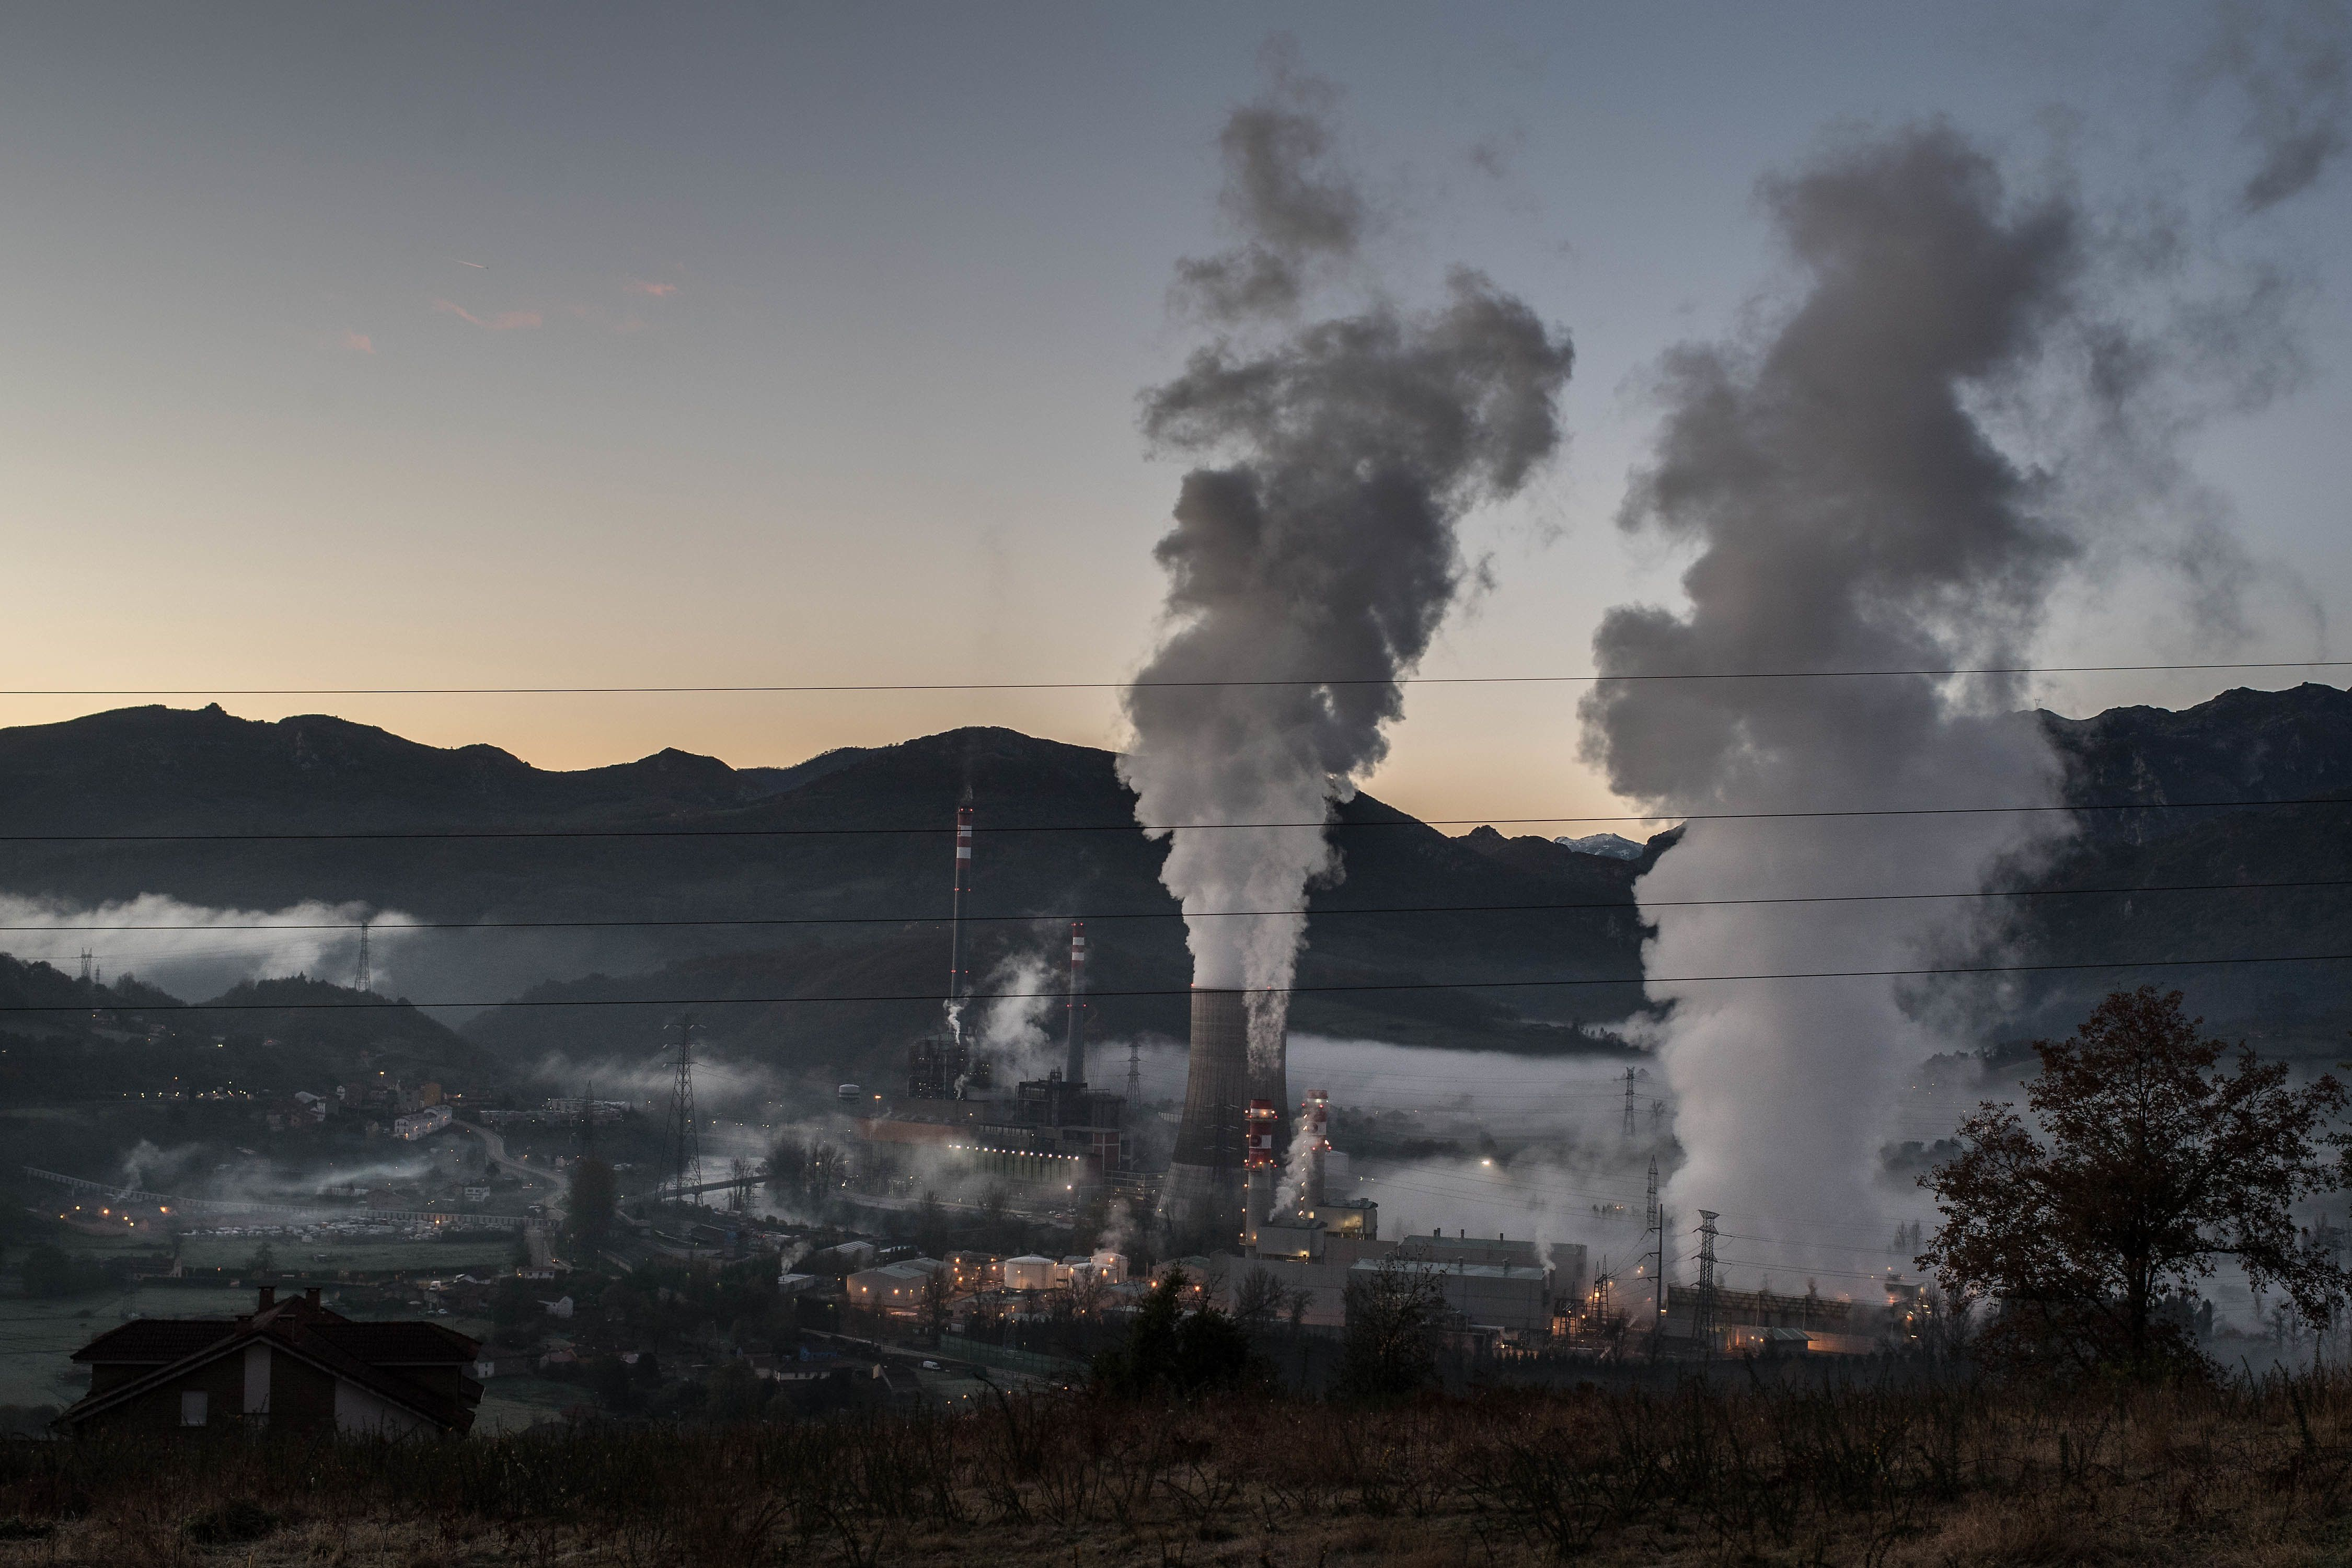 ENTREPUENTES, SPAIN - NOVEMBER 25: The thermal power station of Soto de Ribera is seen on November 25, 2016 in Entrepuentes, Spain. The struggling coal mining industry is on its way out in Spain. The European Commission approved last June aids of 2,130 million Euro for coal mining companies still operating across Spain which must be closed by the end of 2018 if they are not profitable after that date. The crisis of the coal mining sector has been hastened by the heavy reductions to the aids from the Spanish government announced in 2012, from 300 million Euro to 55 million Euro. The competition from the renewable-energy, cheaper imported coal from Africa and Russia and late air-quality regulations approved by the EU are also factors which have accelerated its closure. The coal mining regions of Spain, mainly located in Asturias and Leon, are facing an uncertain future. In the sixties more than 100,000 coal miners worked across the 'Cuencas mineras' or coal mining regions. Nowadays there are not more than 3,000 miners. The coal mining region of Asturias has an unemployment rate of 26%, an aged population, 31% over 65 years. Its economy is based on early retirement subsidies and retirement pensions, and it does not have any new industry's plan for taking the relay to coal. Because all these factors, the final closure of the coal mining in Spain is seen by trade unions as a serious threat to regions of Spain depending on coal mining.  (Photo by David Ramos/Getty Images)